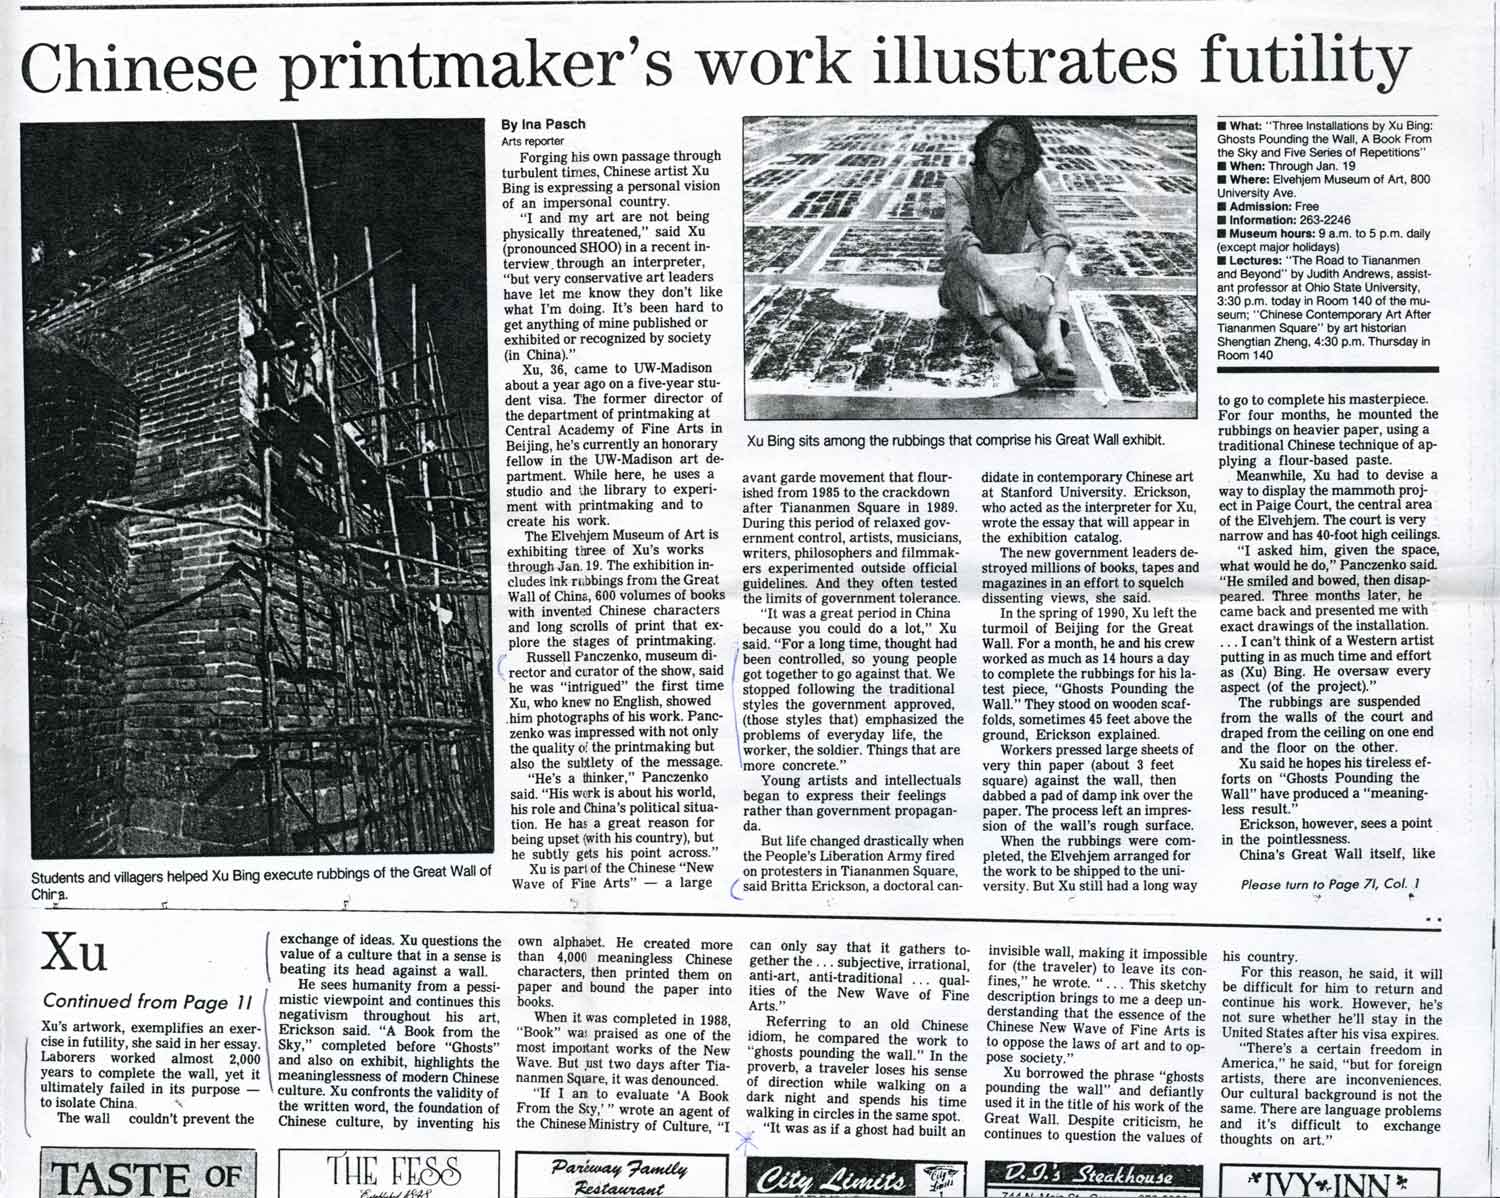 Chinese Printmaker's Work Illustrates Futility, article